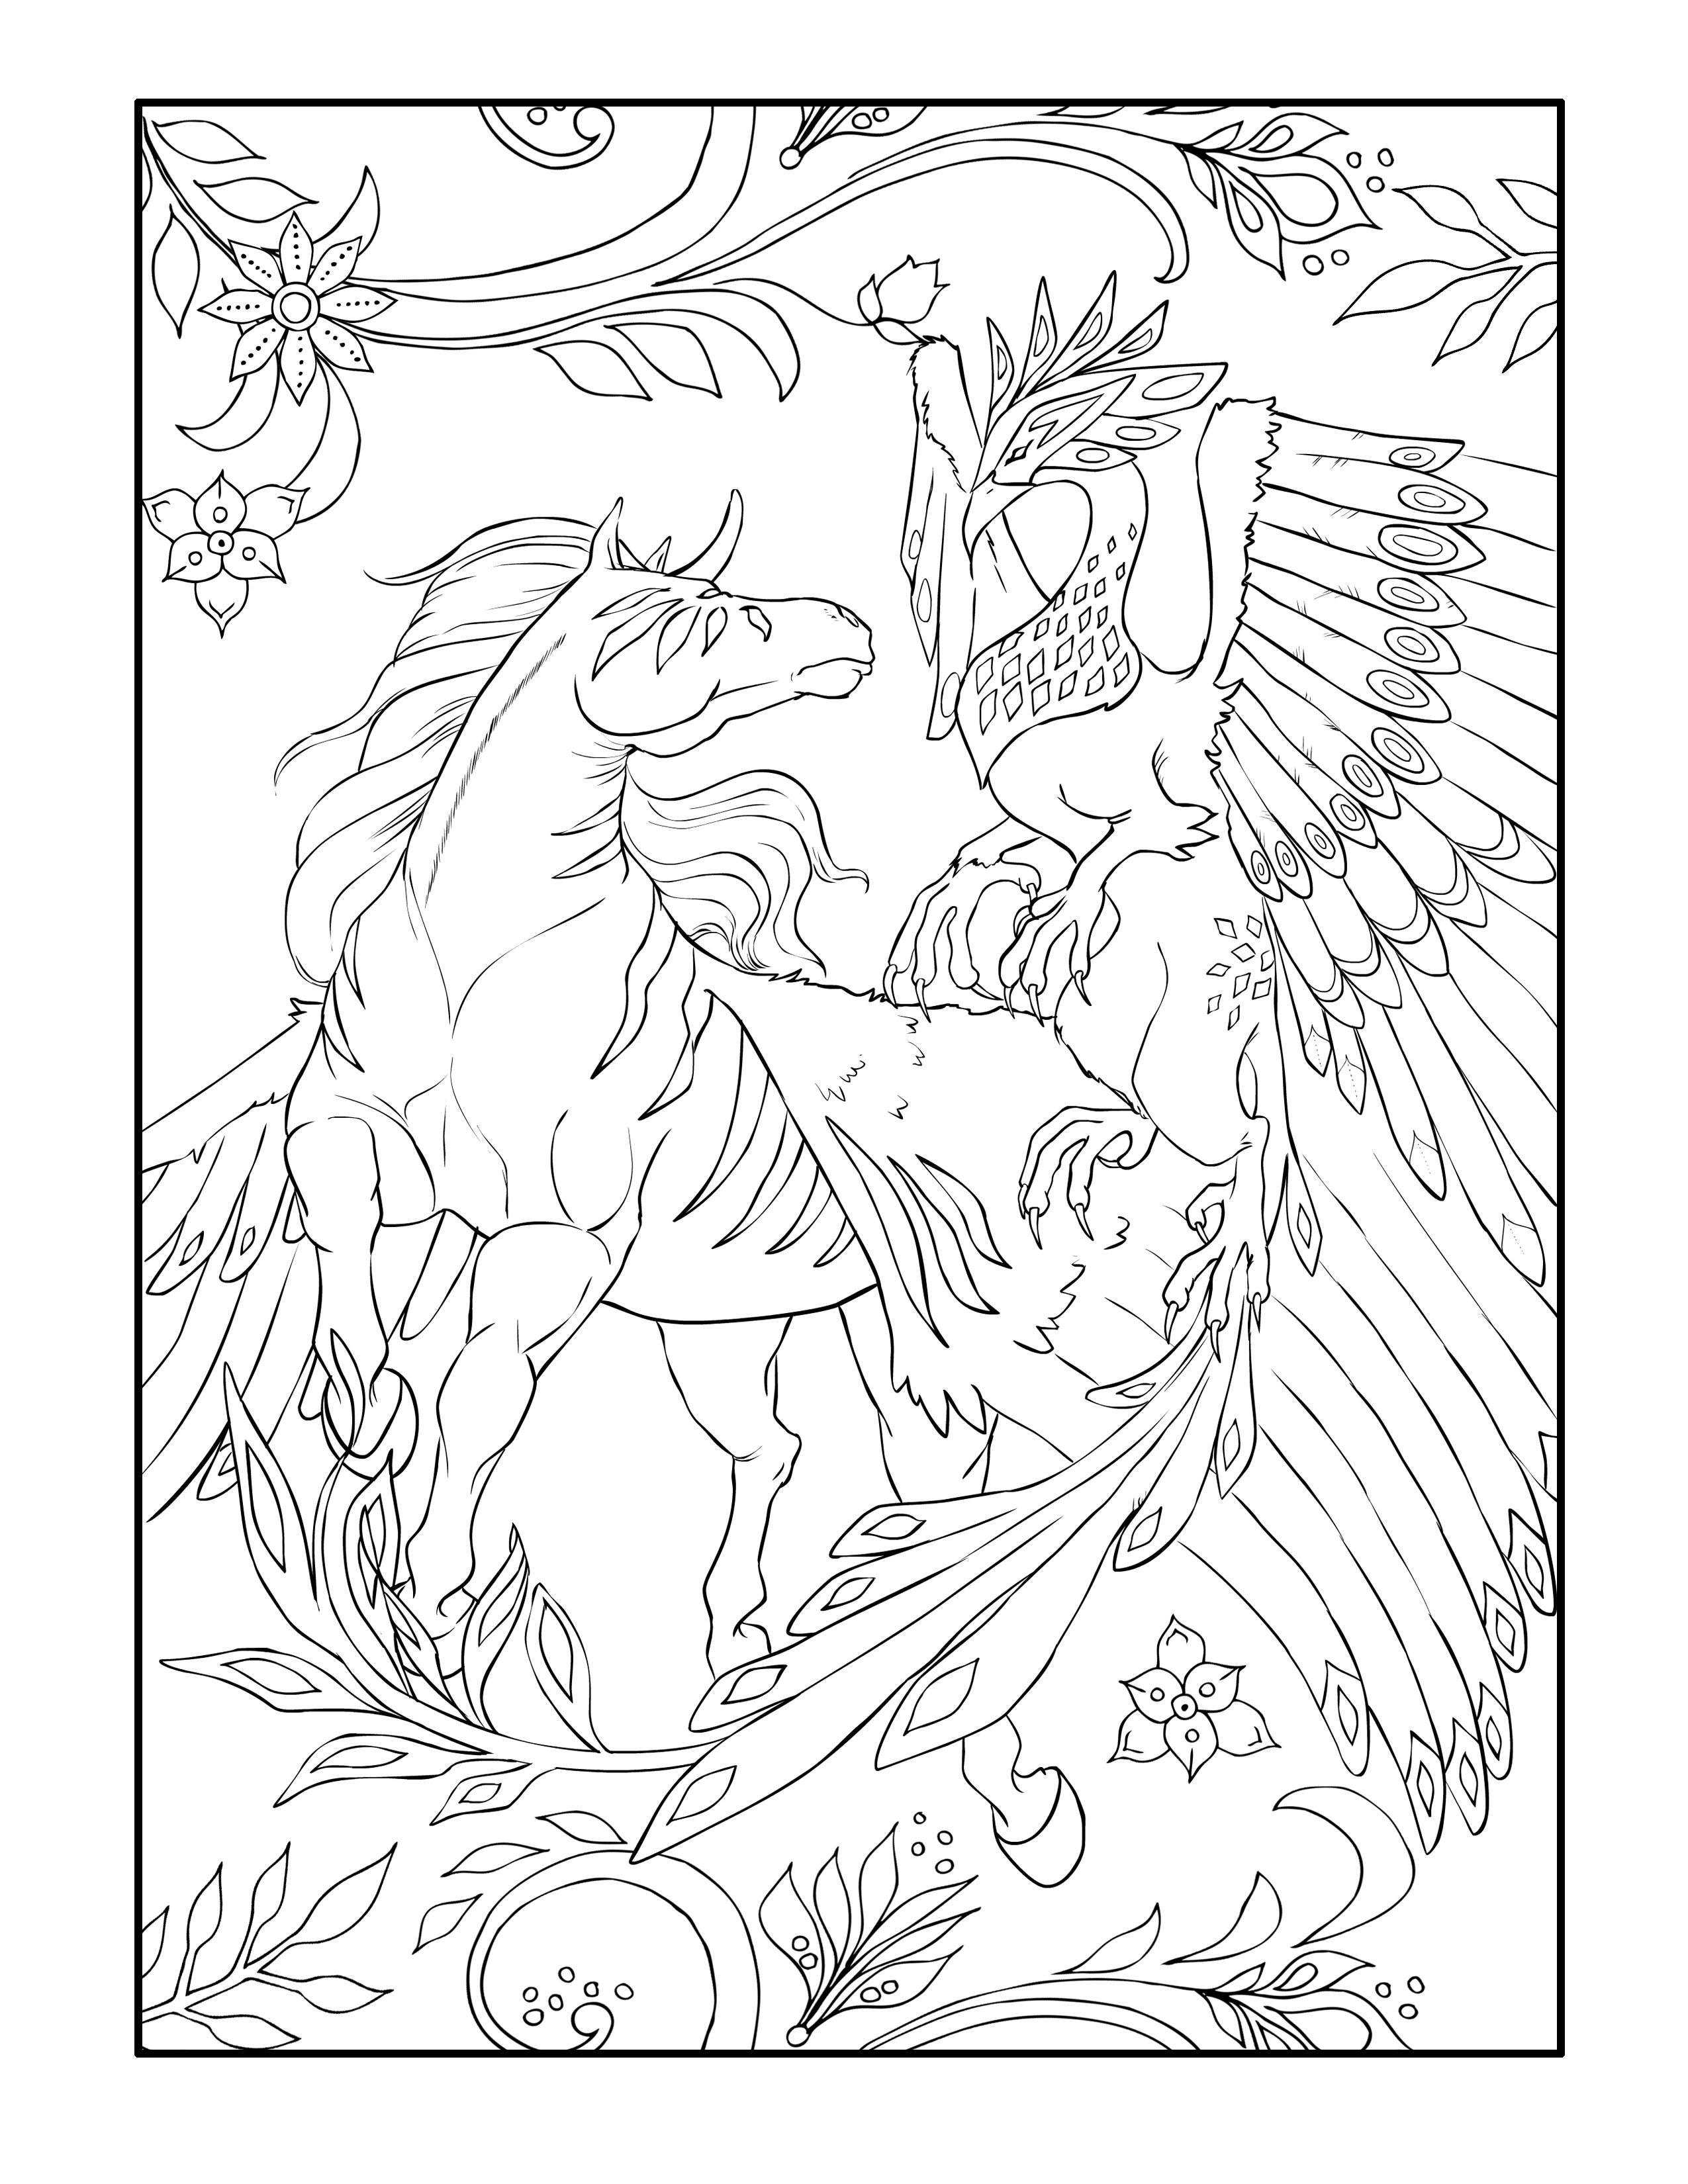 This adult coloring page page is